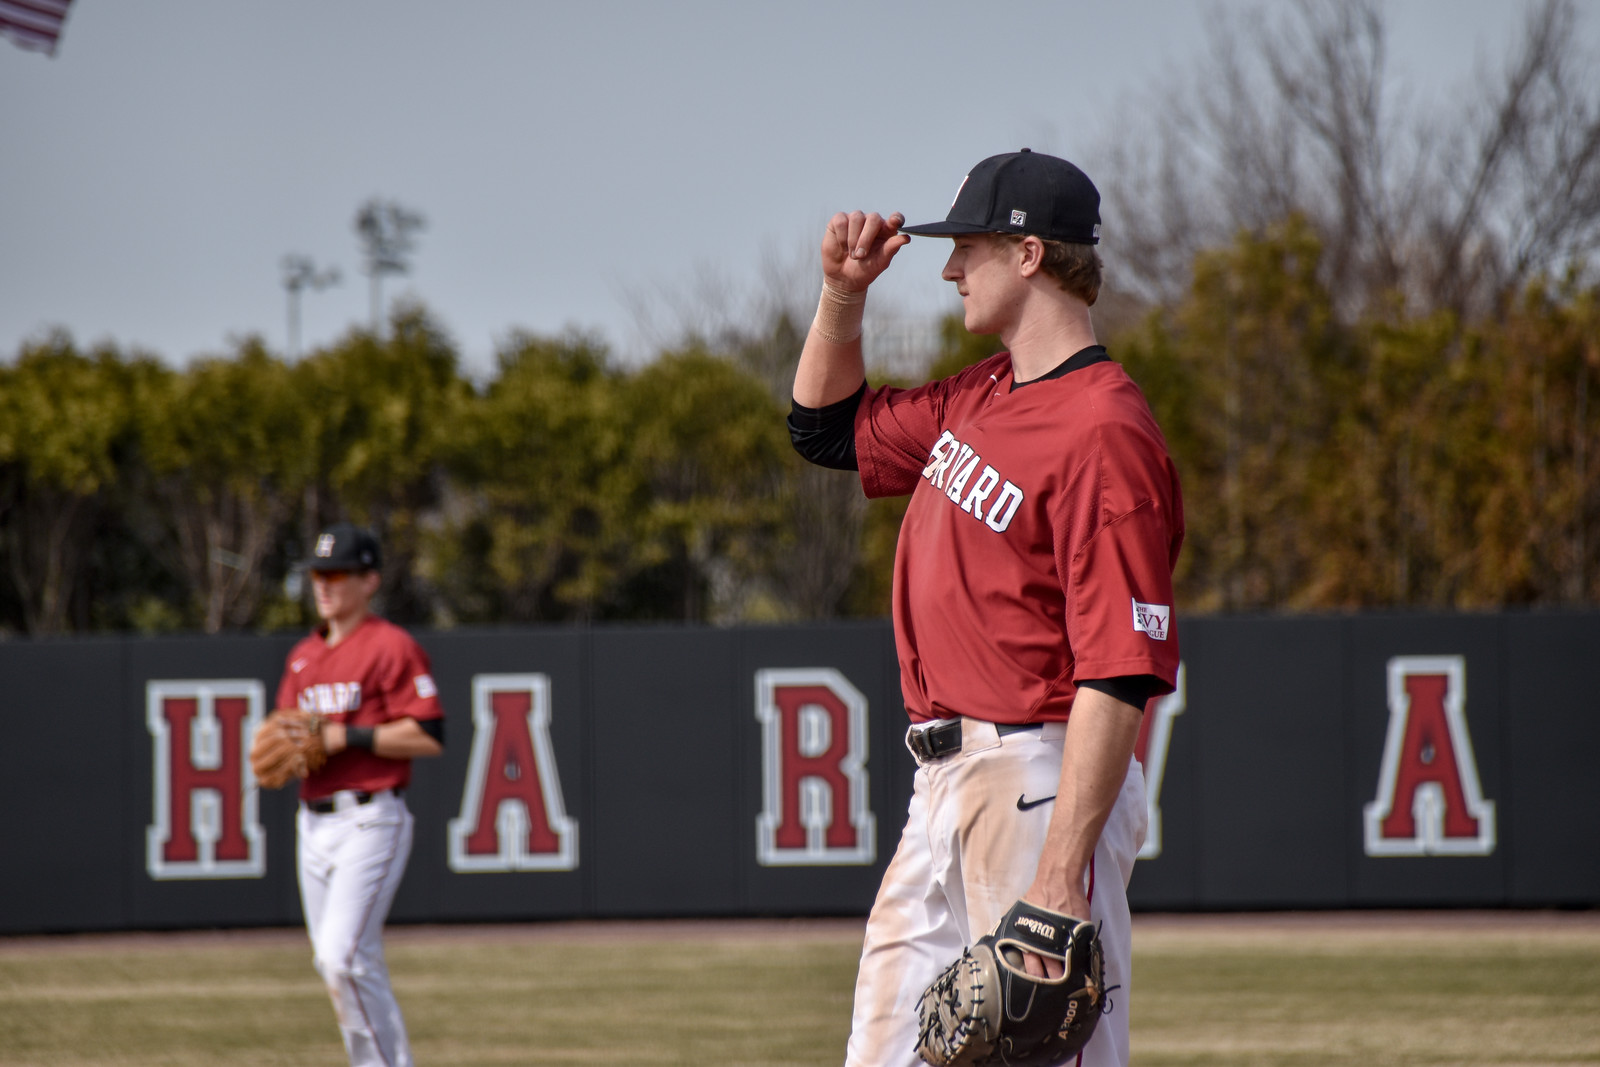 First baseman Patrick McColl takes his position in last weekend's series against Princeton.